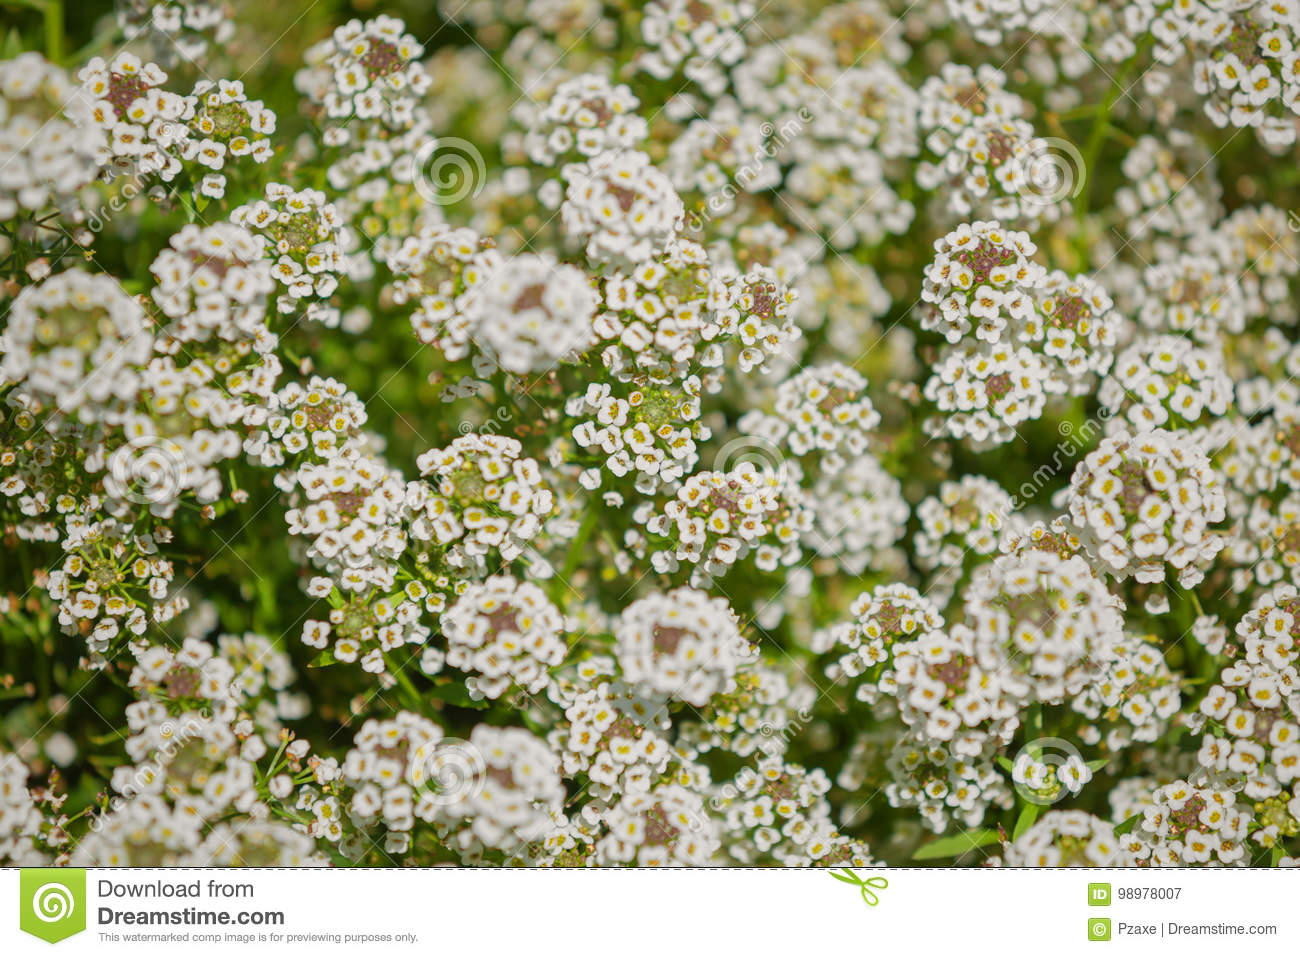 The Bush With Small White Flowers Stock Image Image Of Grass